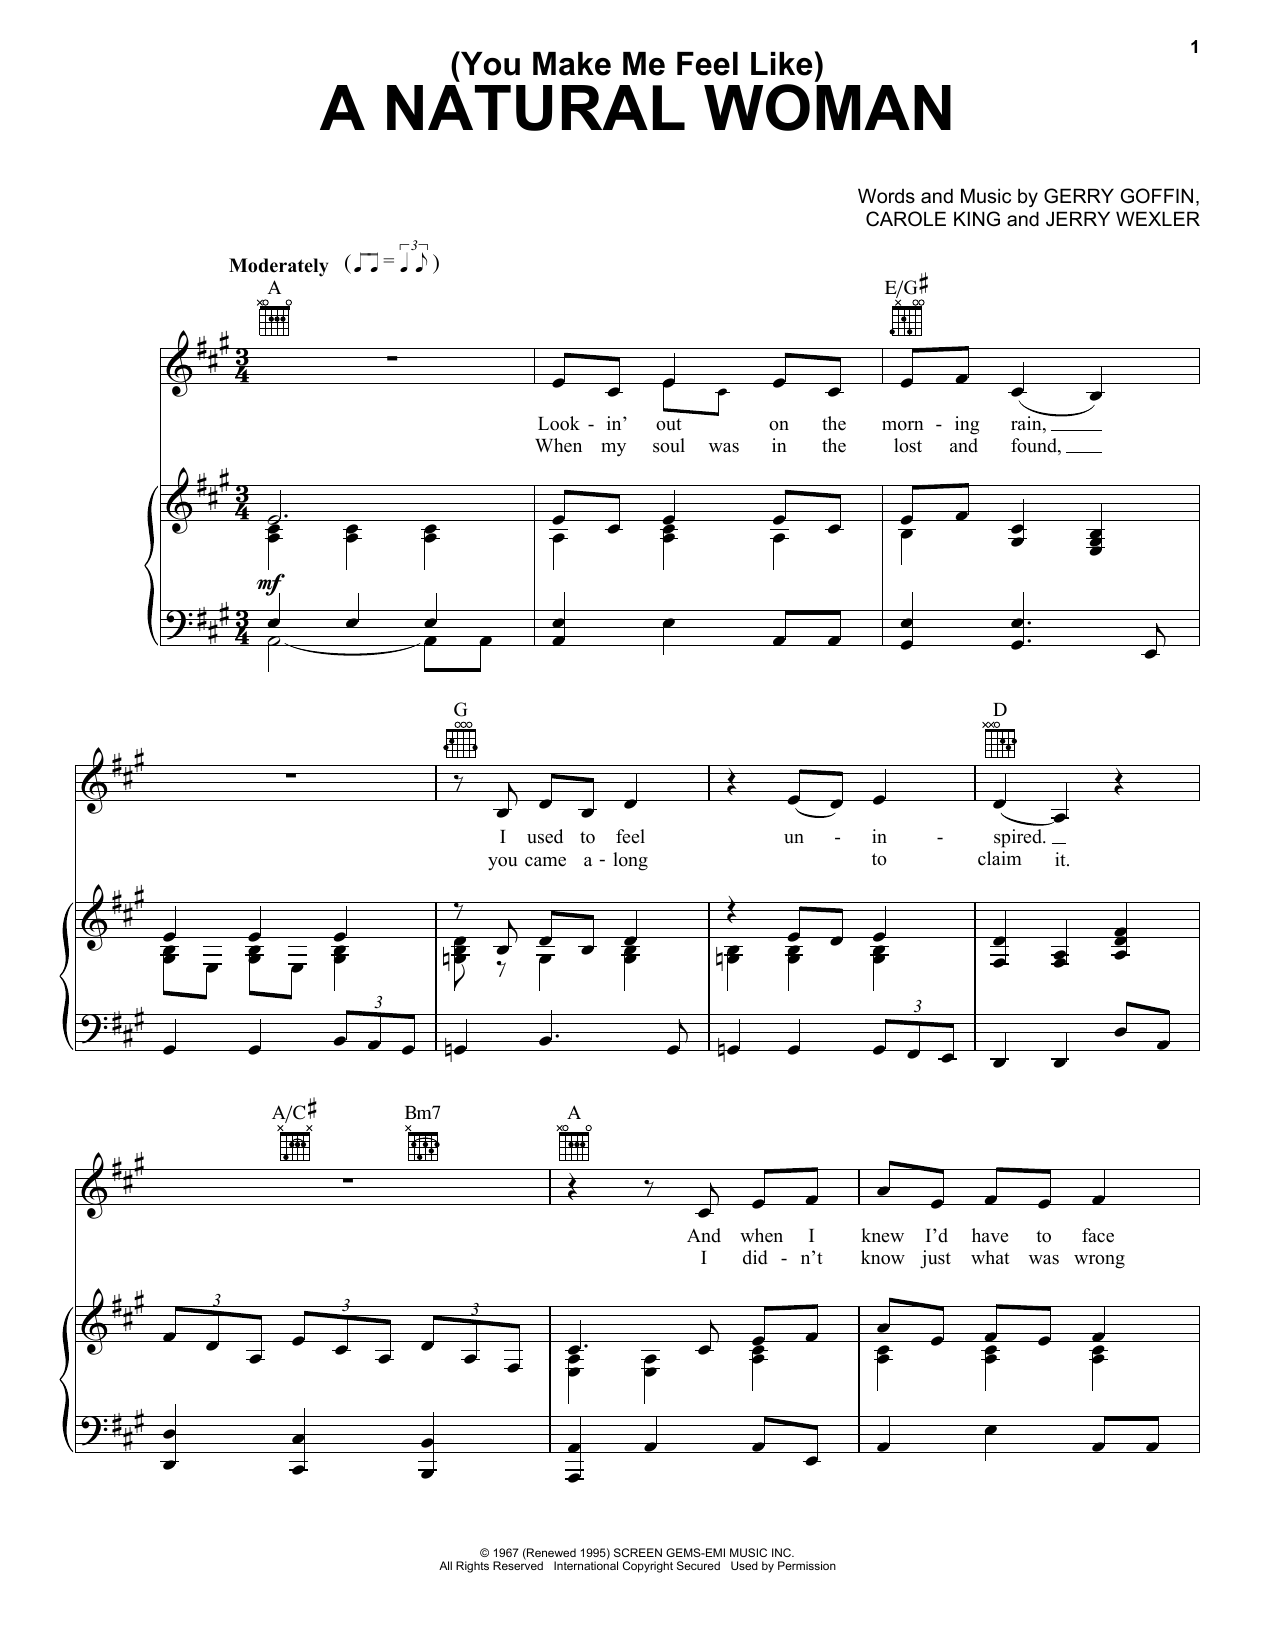 photo relating to All of Me Easy Piano Sheet Music Free Printable identified as Aretha Franklin (On your own Produce Me Appear Which include) A Organic Girl Sheet New music Notes, Chords Obtain Printable Piano, Vocal Guitar (Immediately-Hand Melody) -